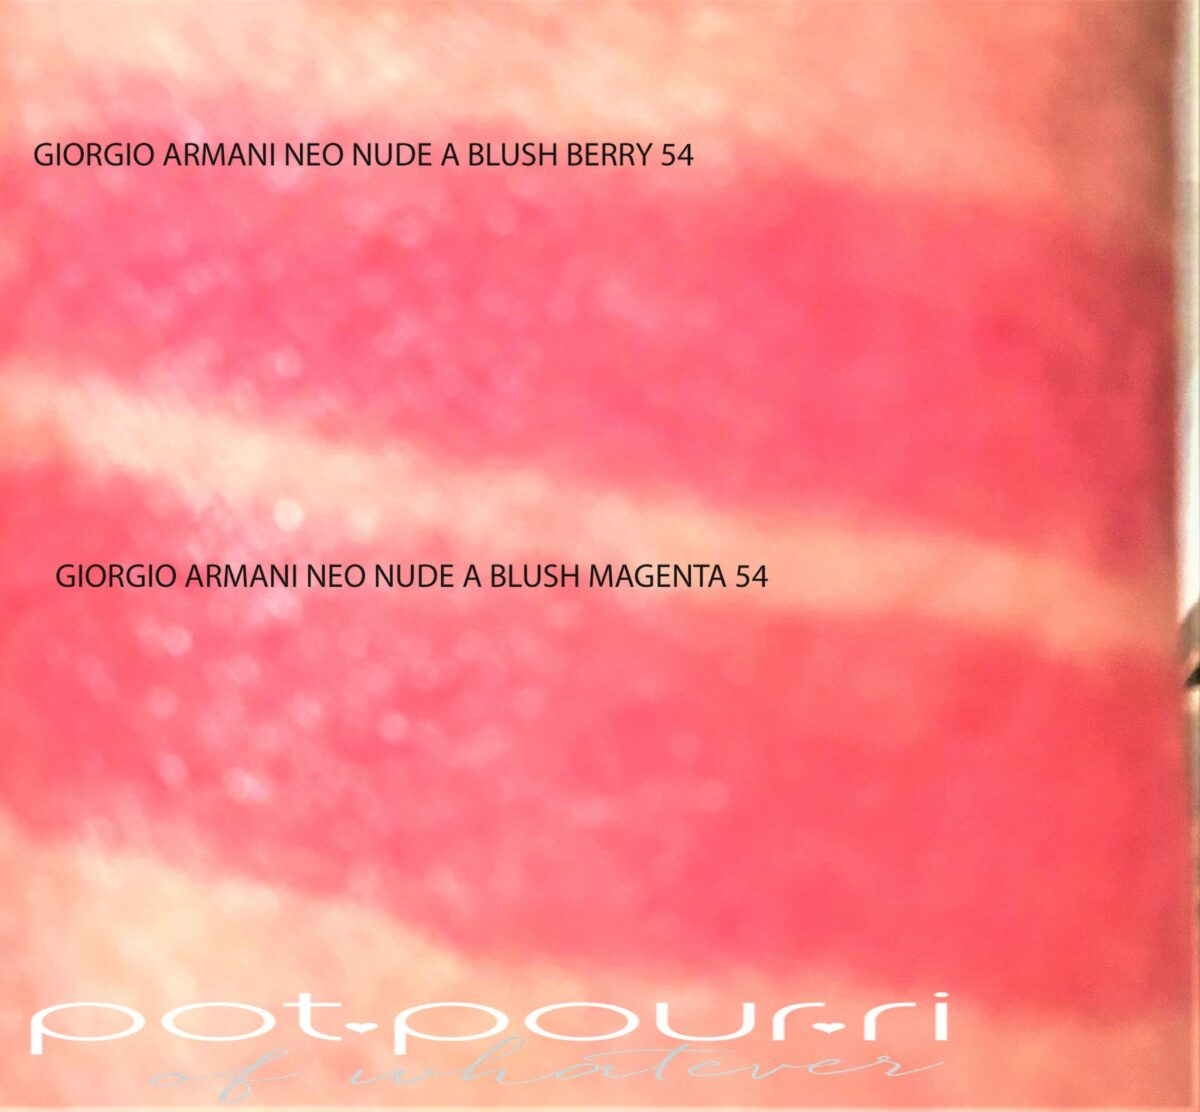 A BLUSH SWATCHES BERRY 54 AND MAGENTA 51